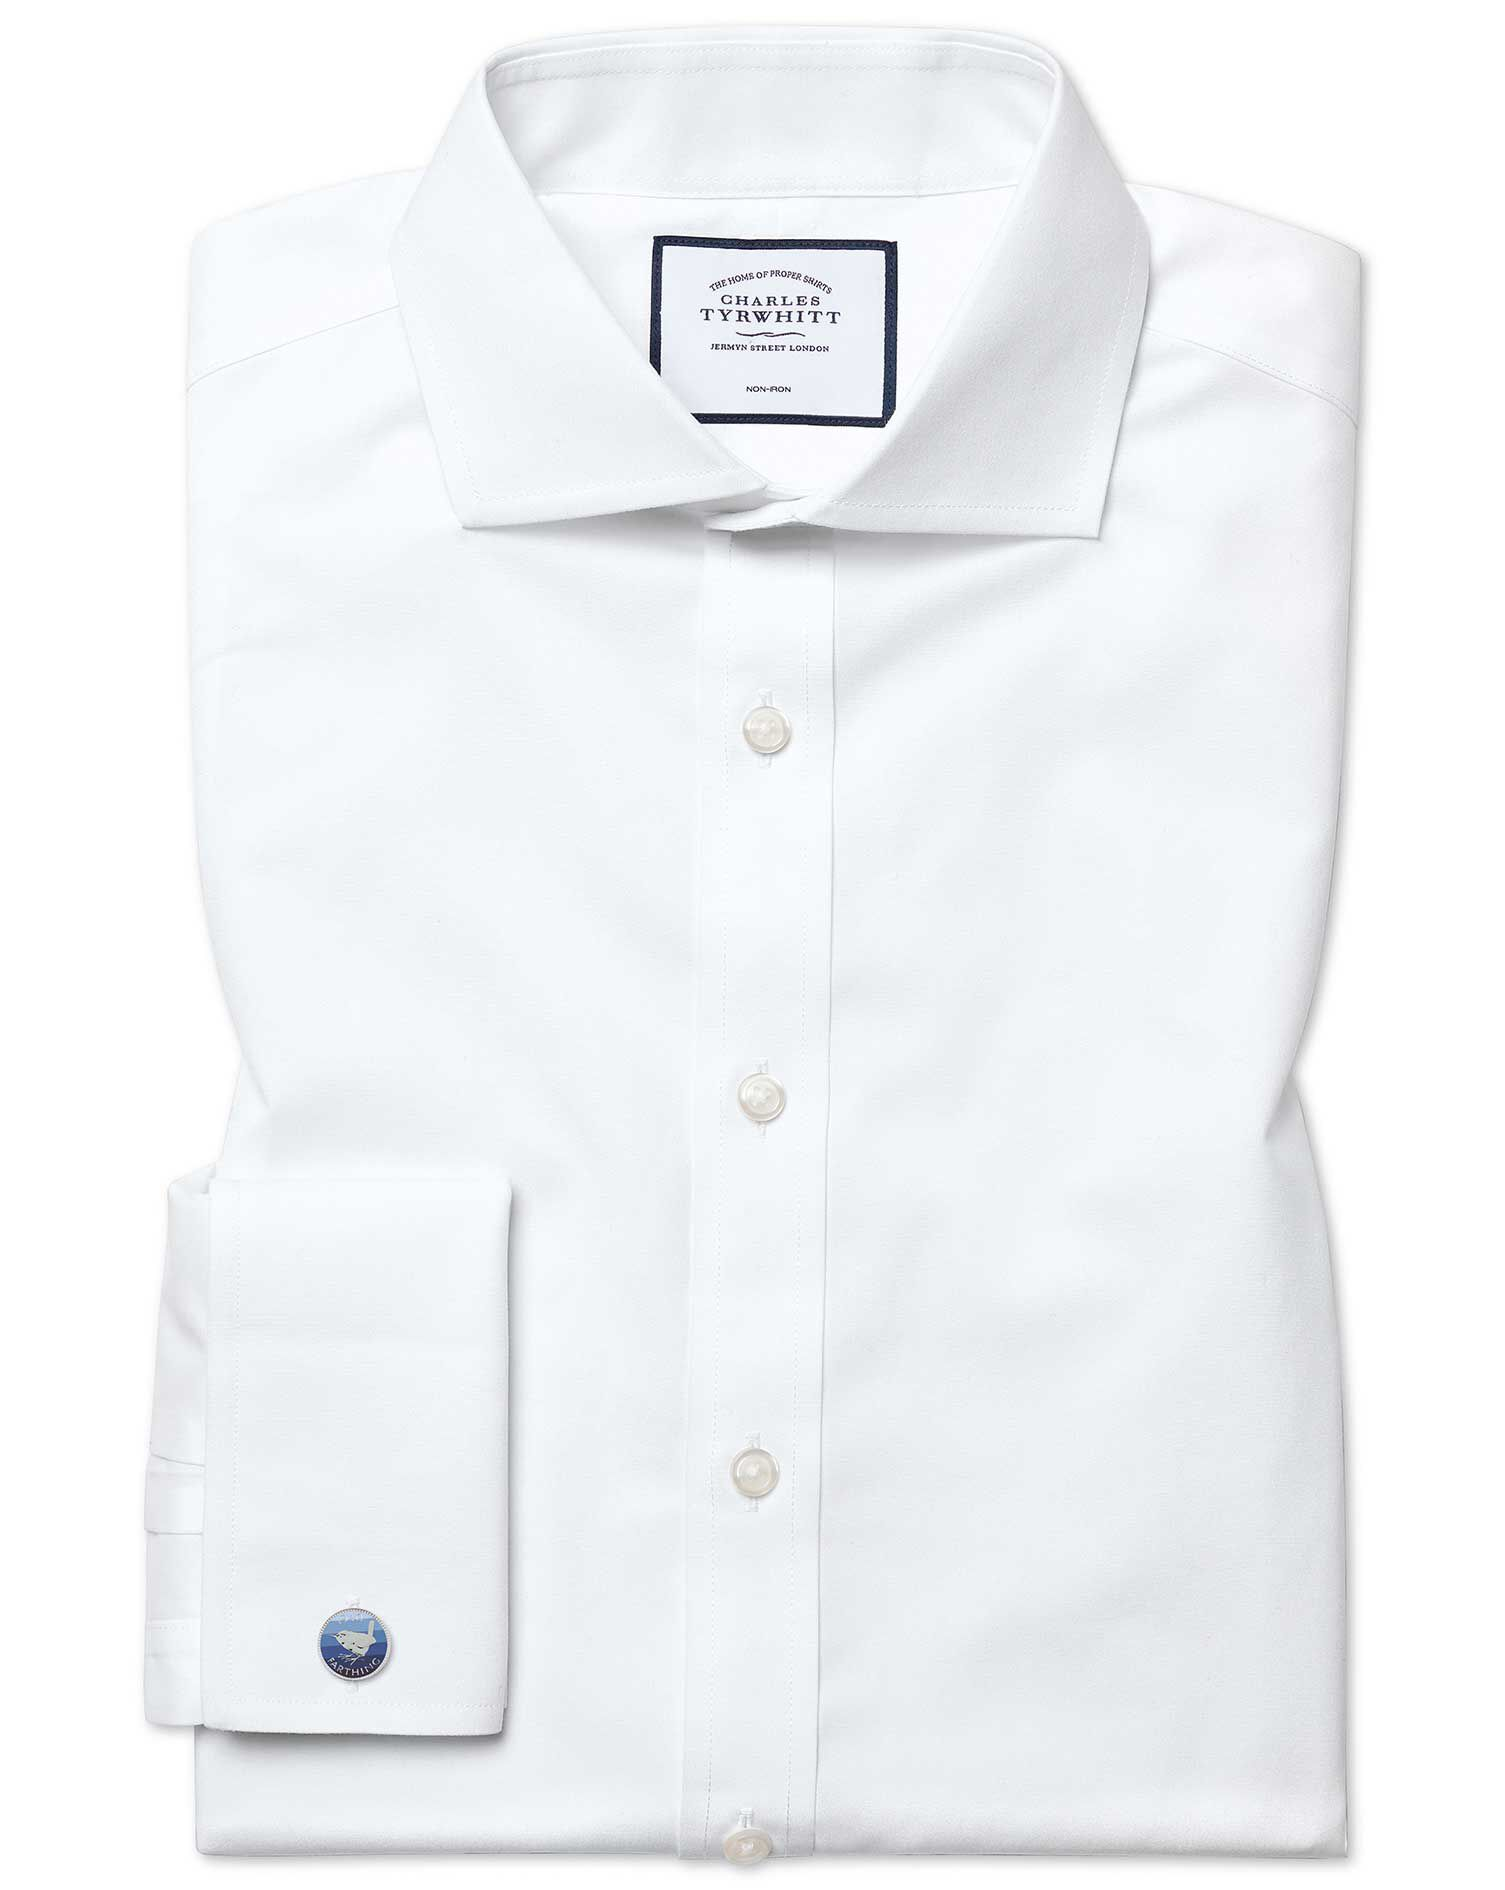 Classic Fit Cutaway Non-Iron Poplin White Cotton Formal Shirt Single Cuff Size 15.5/34 by Charles Ty